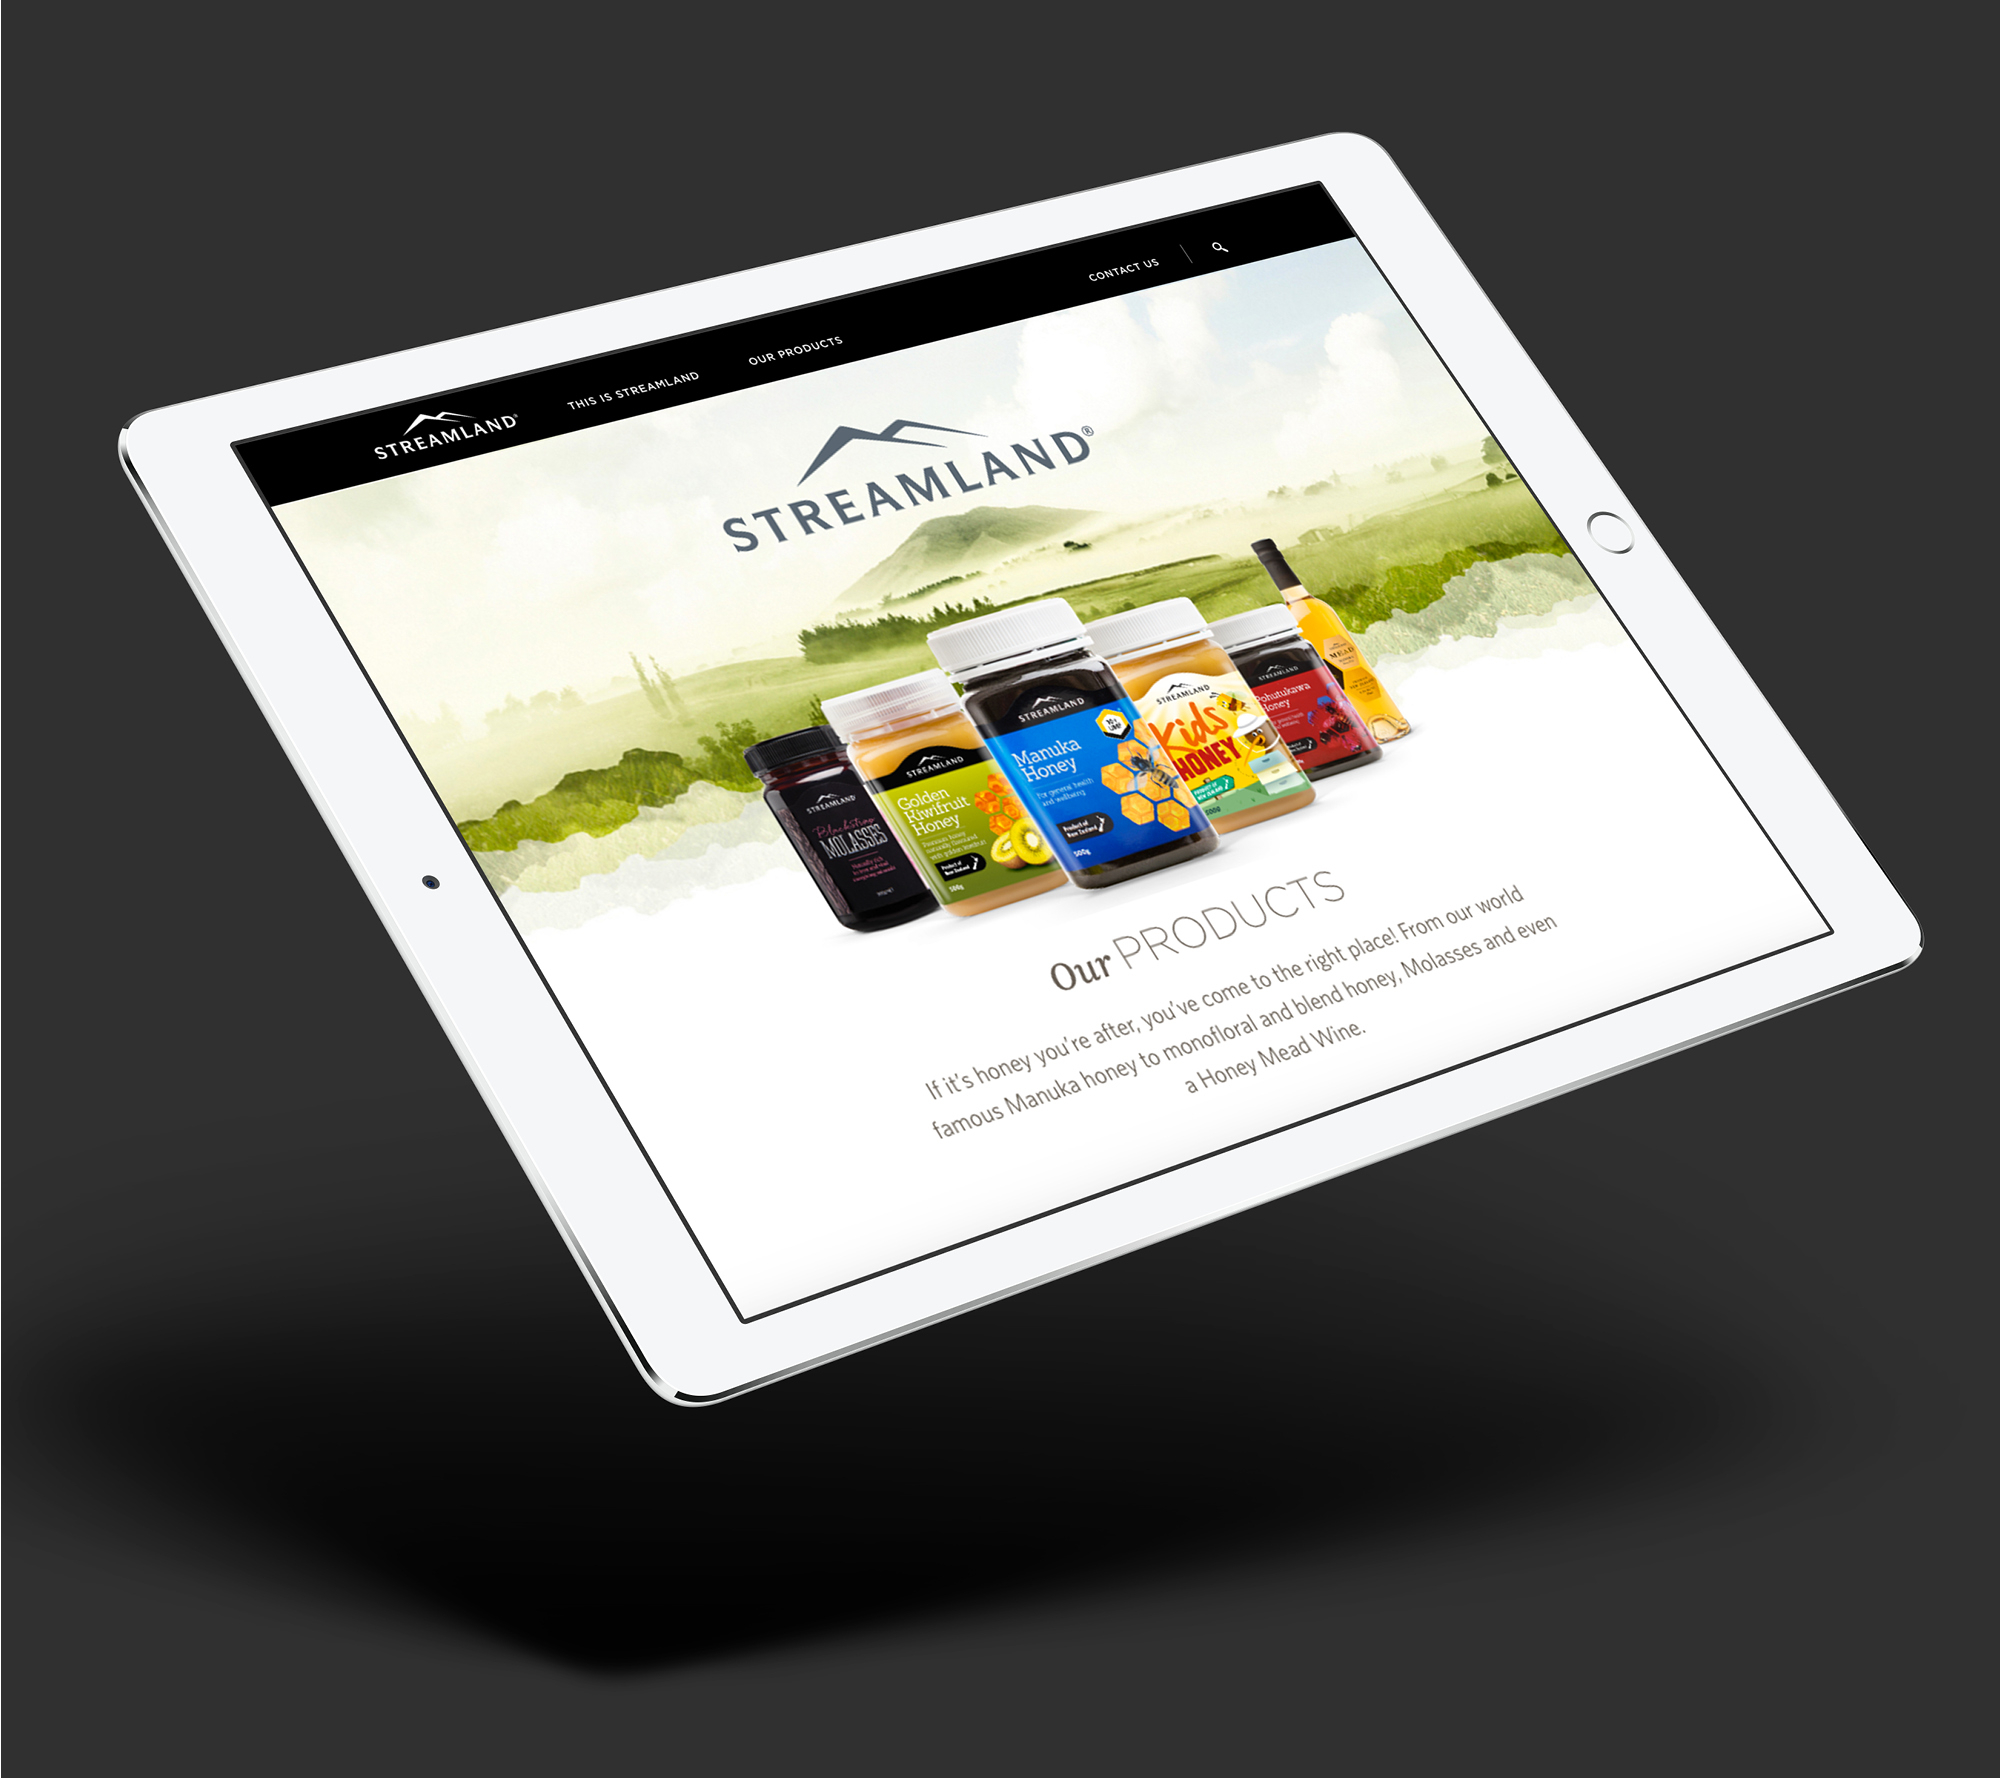 onfire design streamland honey digital website design auckland 2